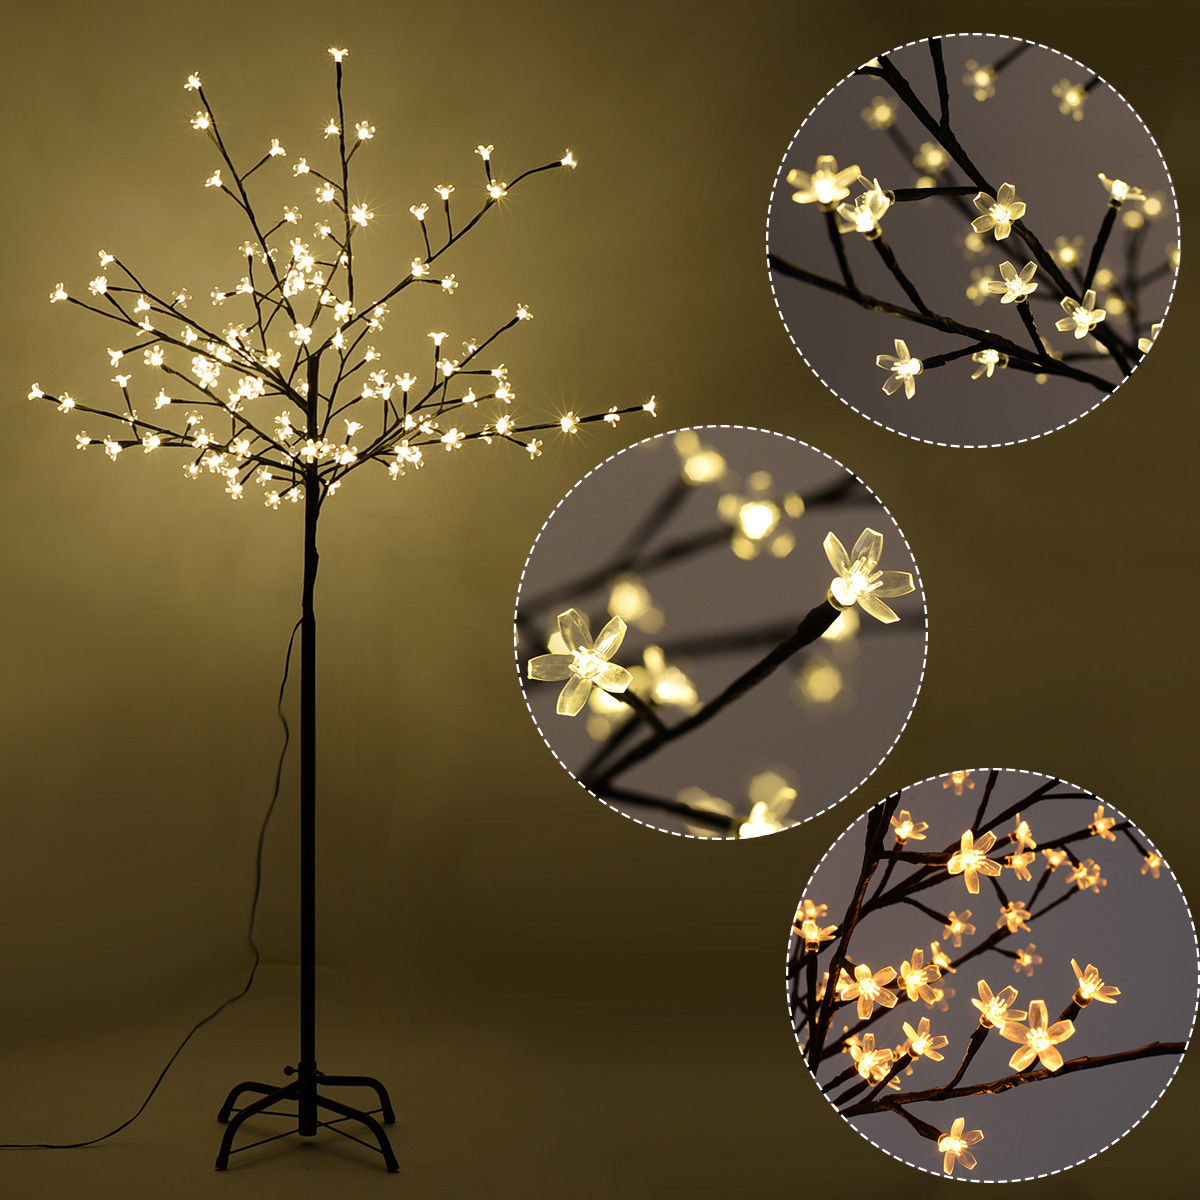 Costway Christmas Xmas Cherry Blossom LED Tree Light Floor Lamp Holiday Decor Warm White by Costway